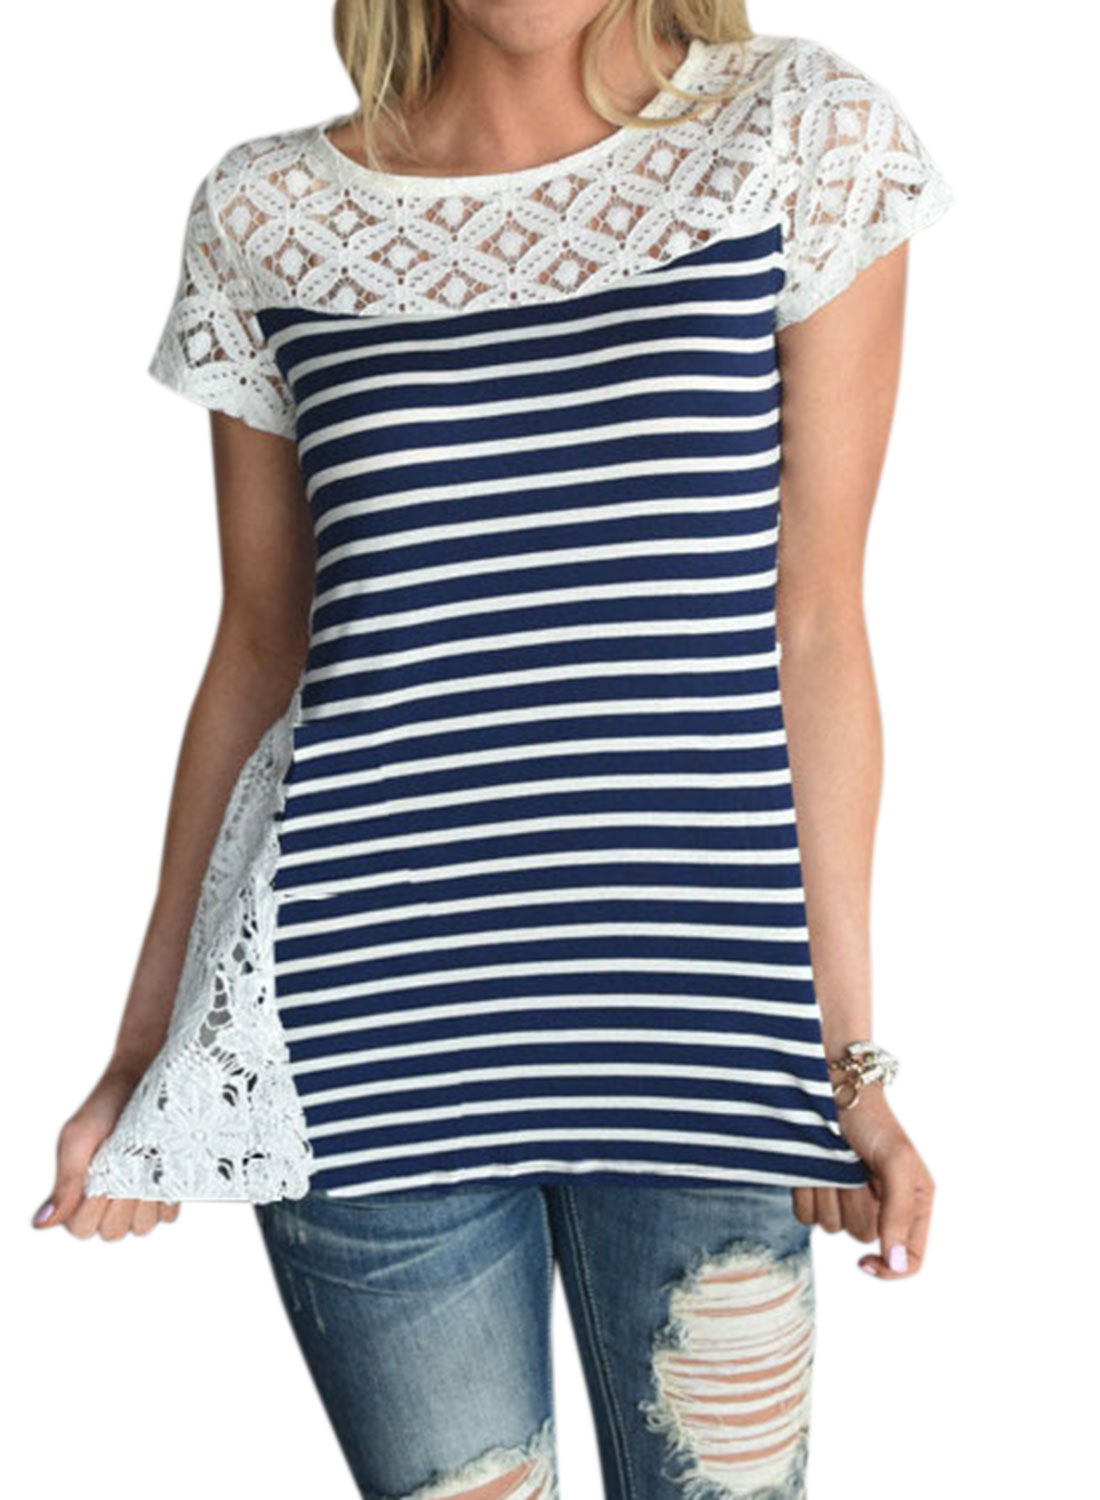 WLLW Women Round Neck Lace Splice Stripe Short Sleeve Shirt Tops Tee by